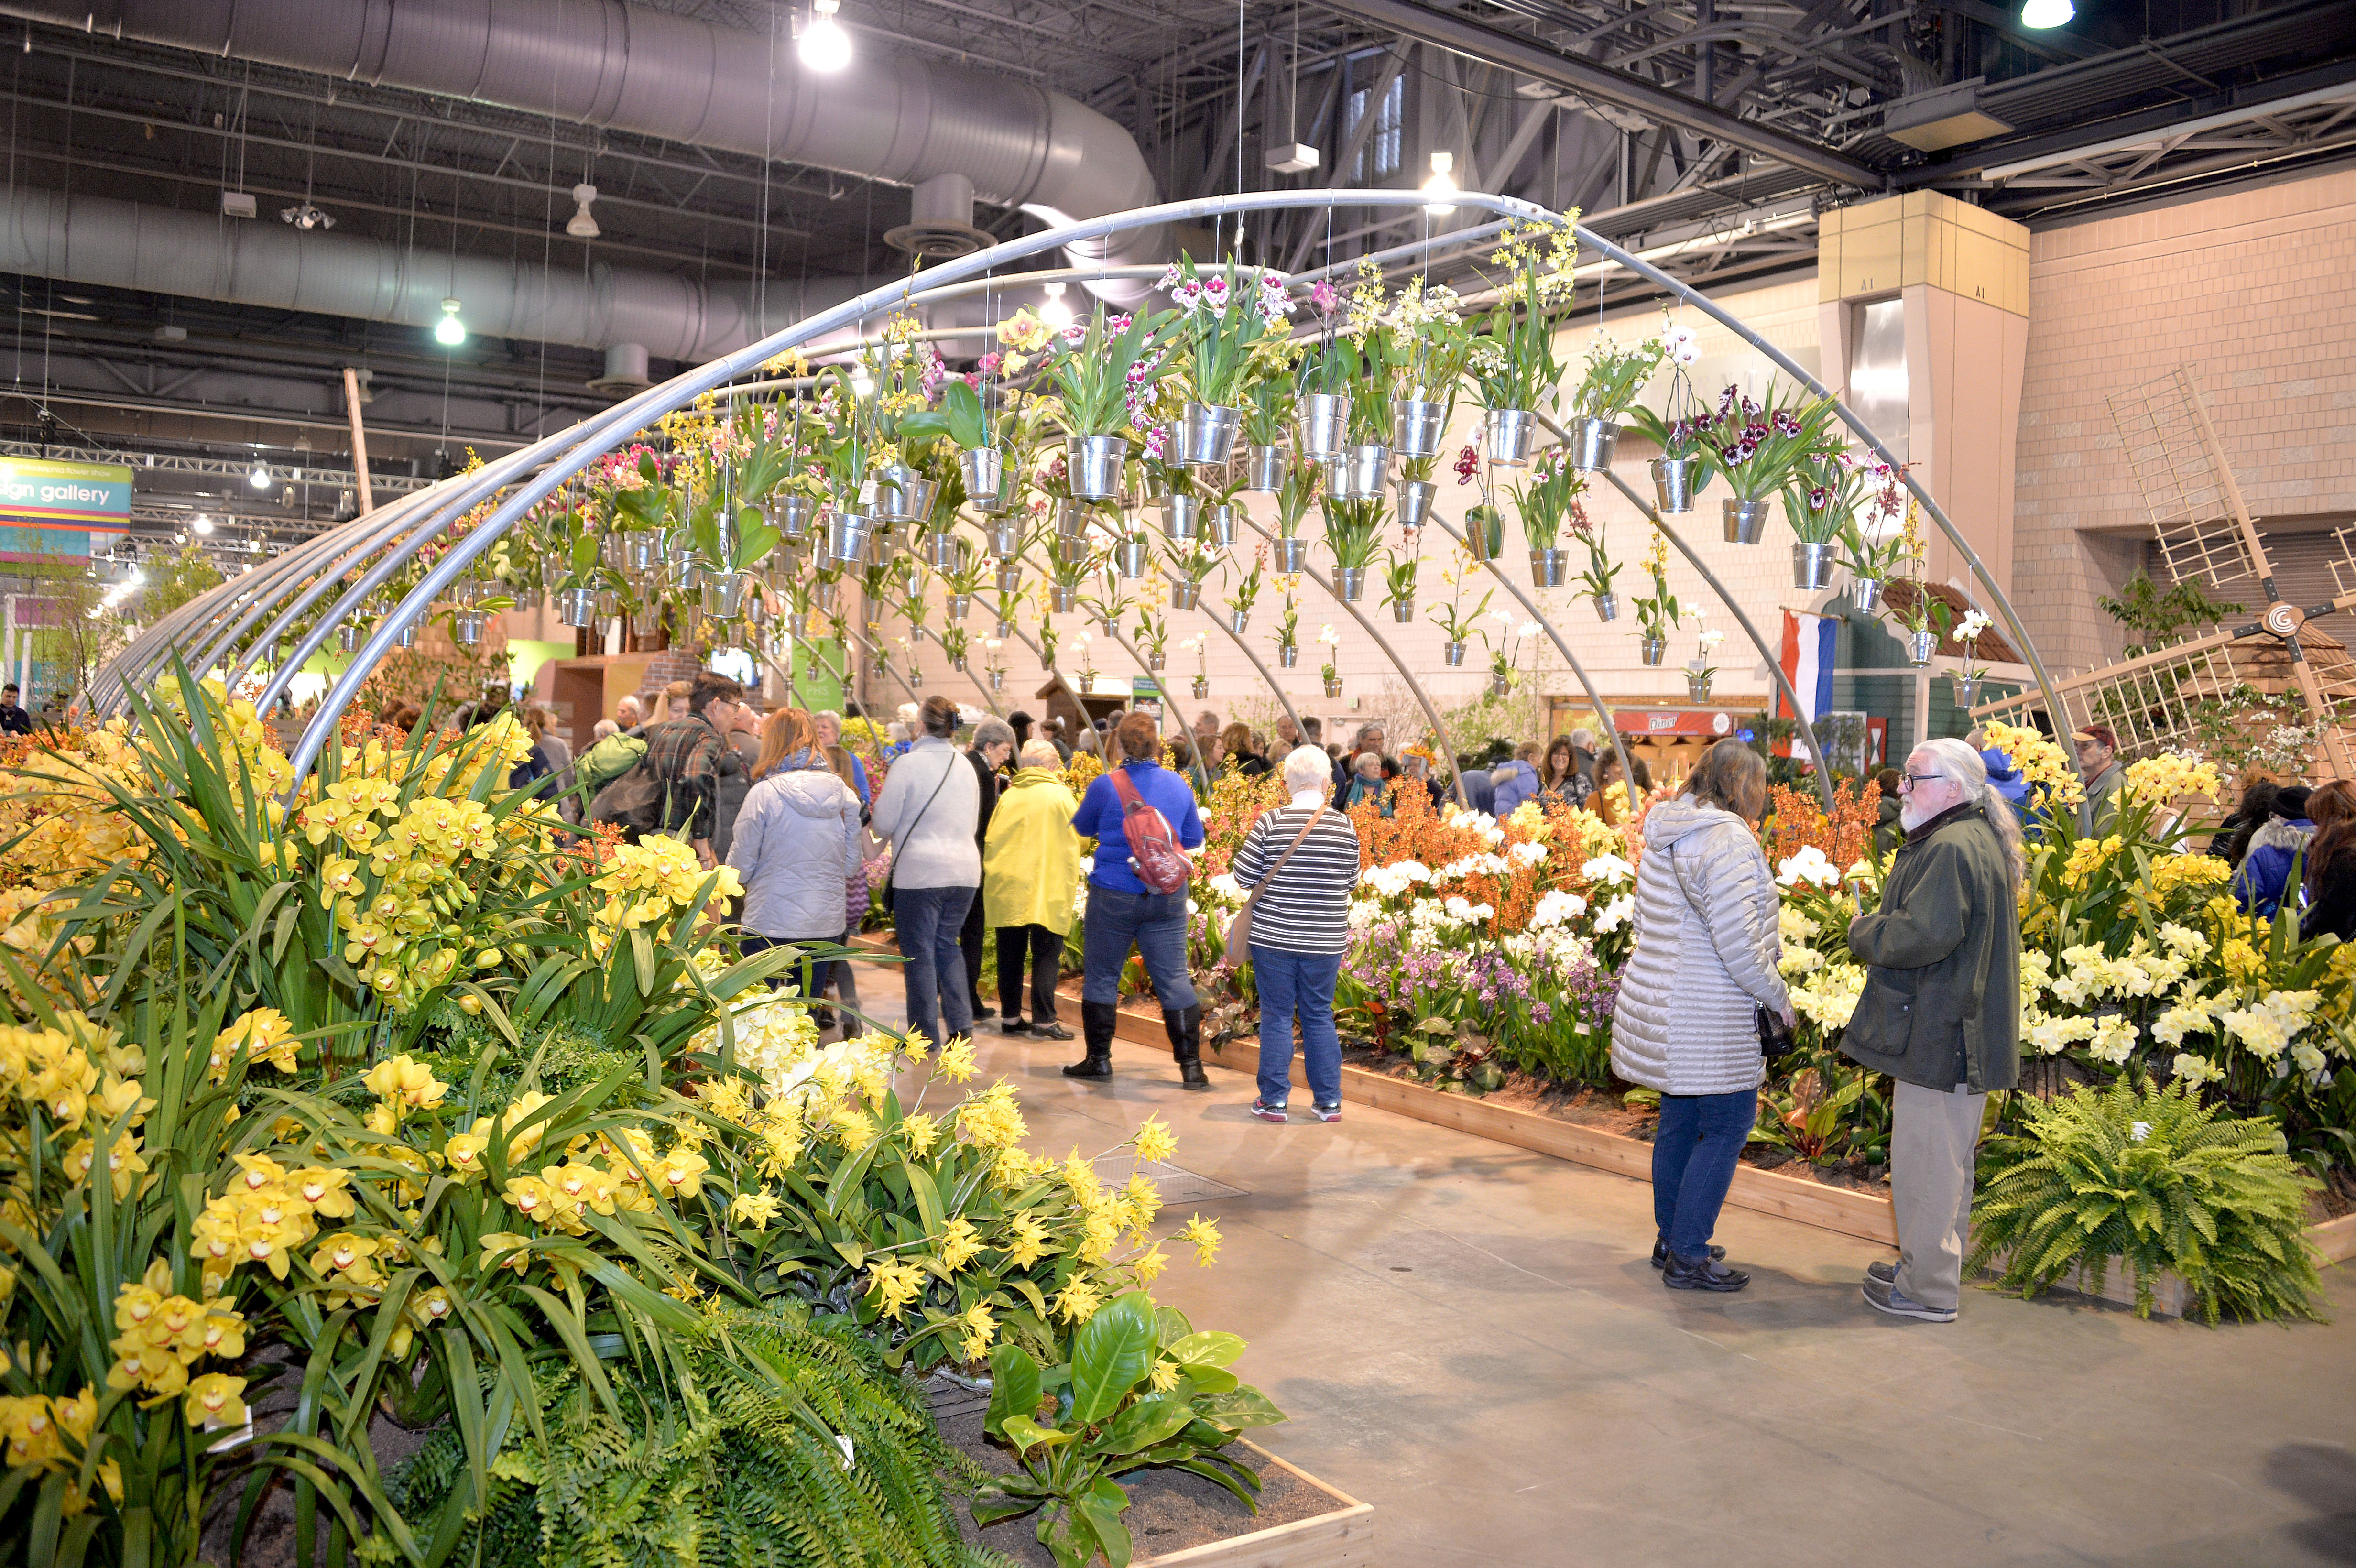 A trip to Holland at the Philadelphia Flower Show